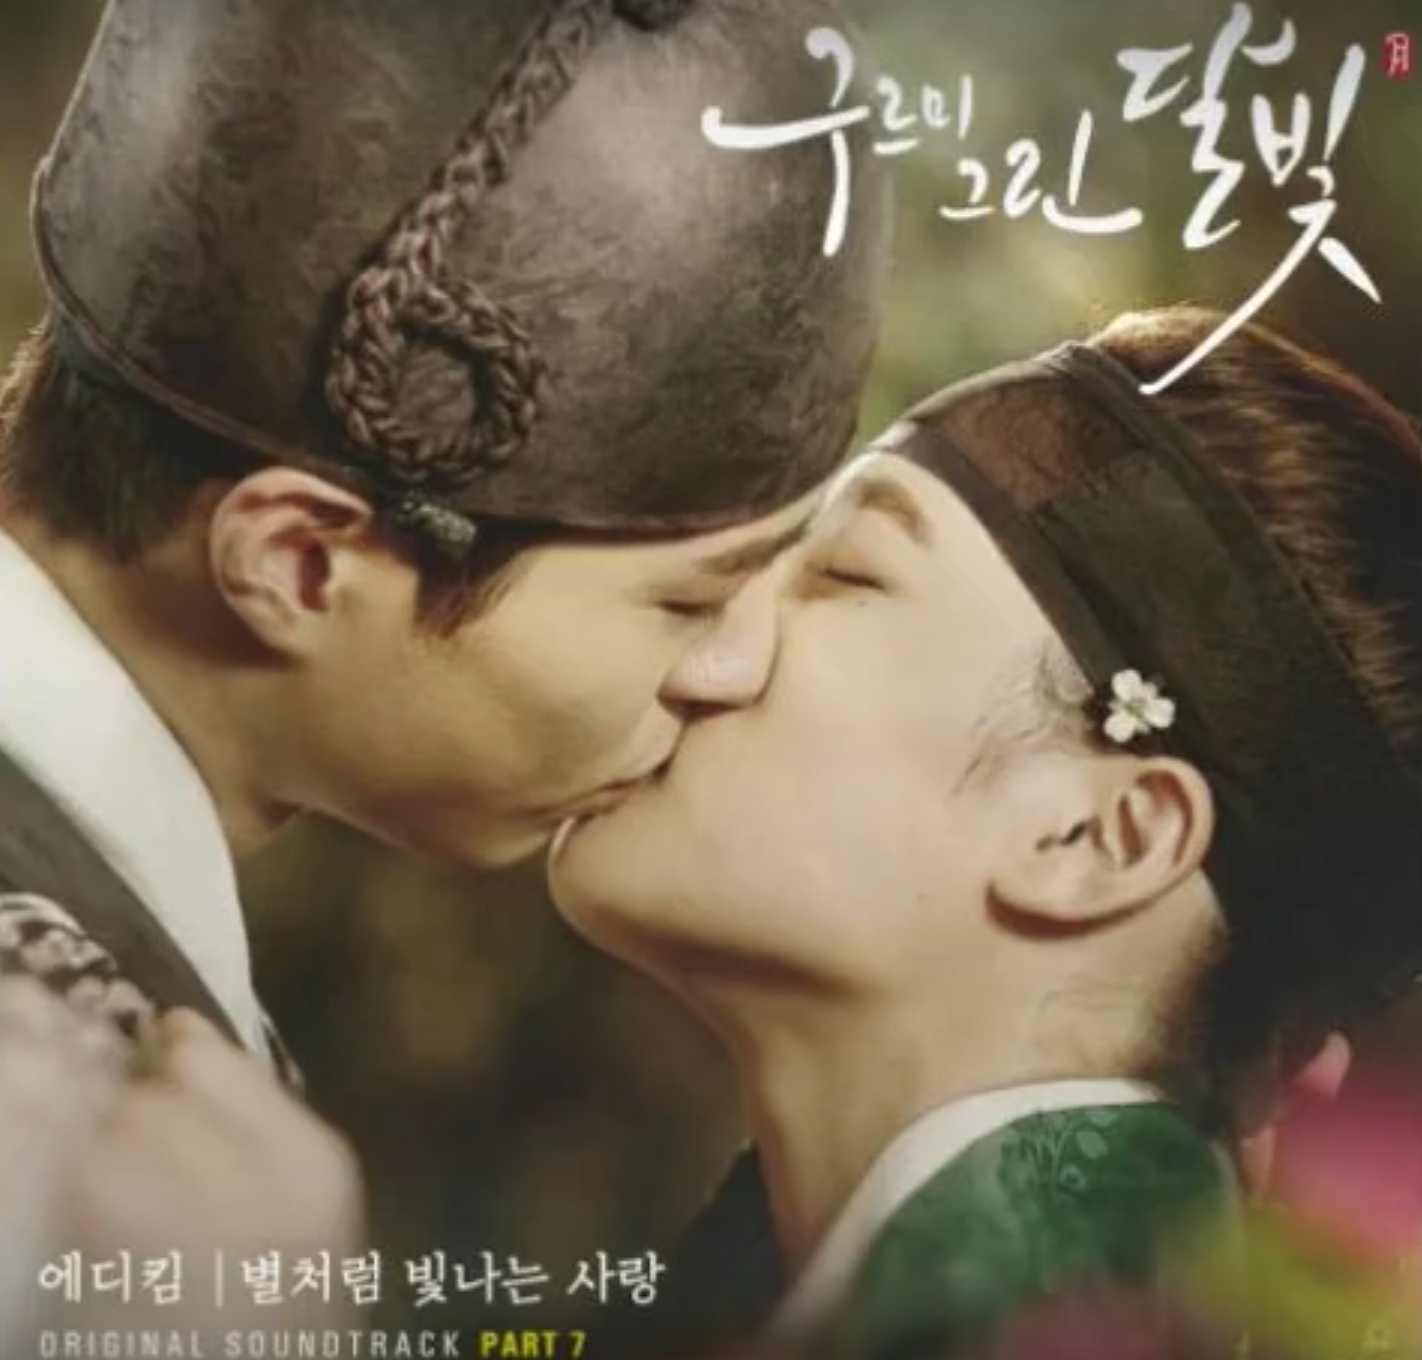 """Listen: Eddy Kim Promises His Eternal Love In New OST For """"Moonlight Drawn By Clouds"""""""